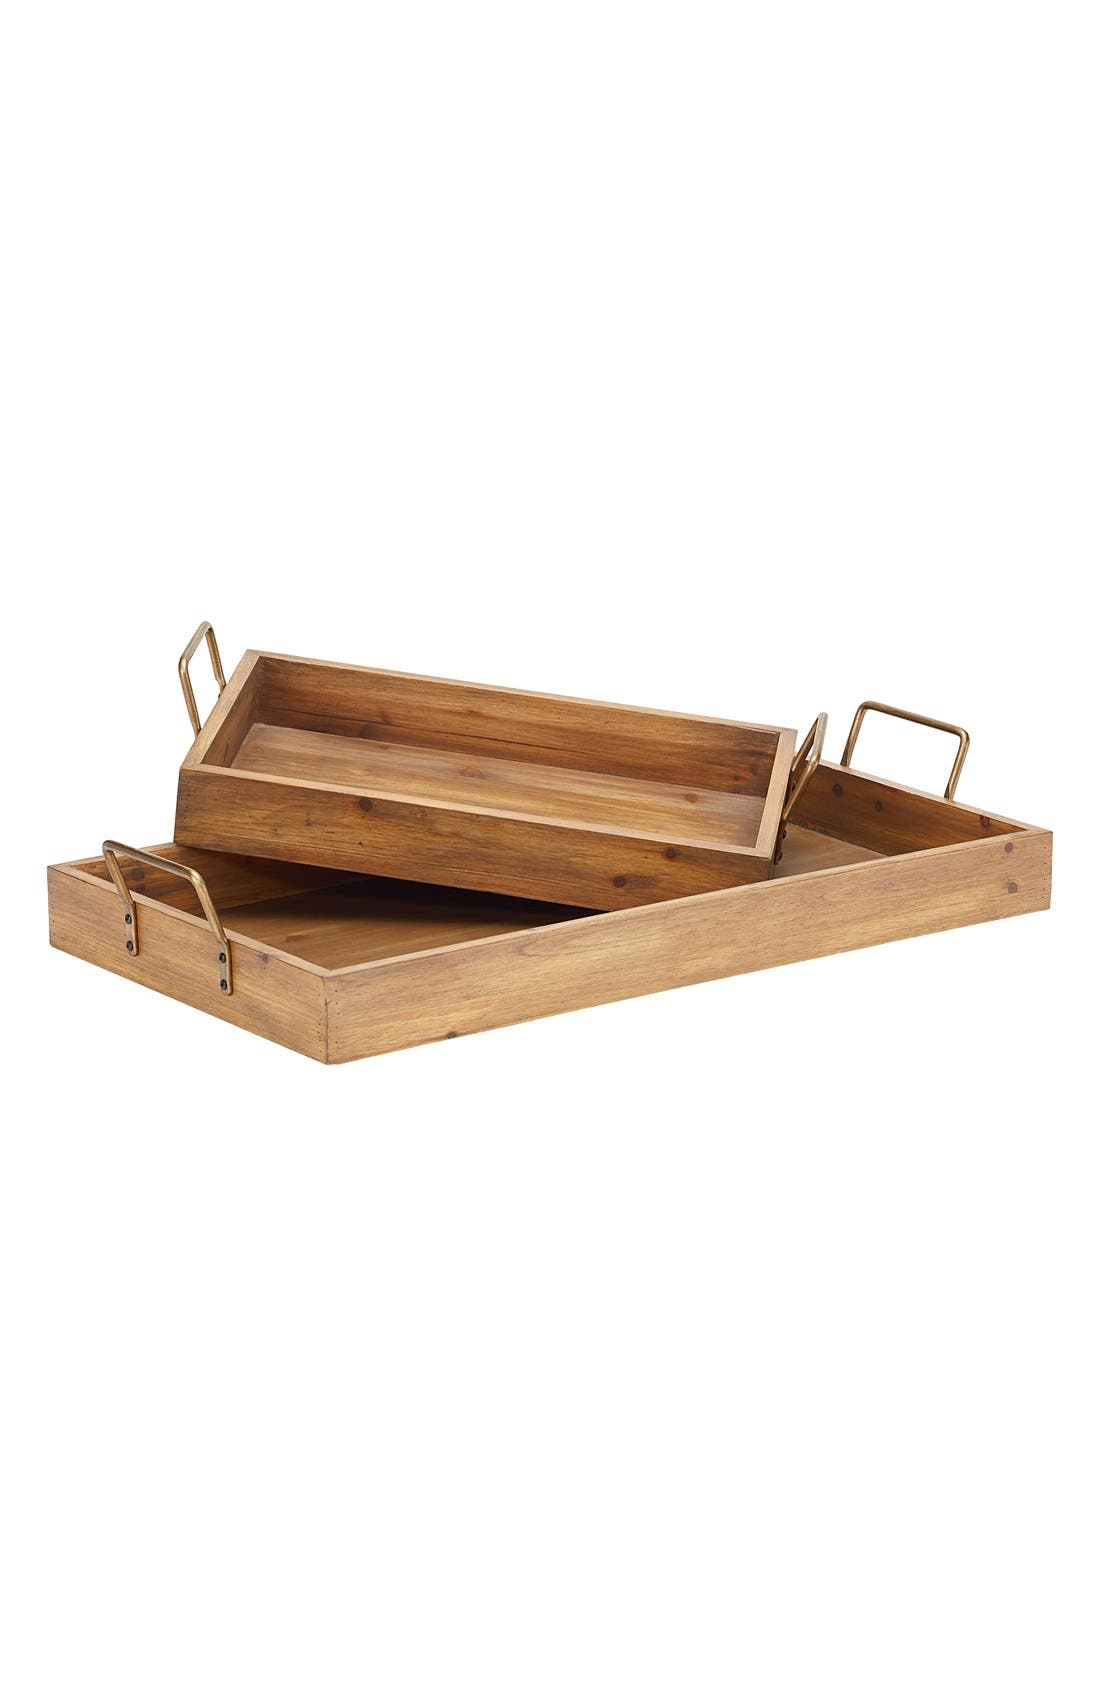 Alternate Image 1 Selected - Magnolia Home Wooden Breakfast Trays (Set of 2)